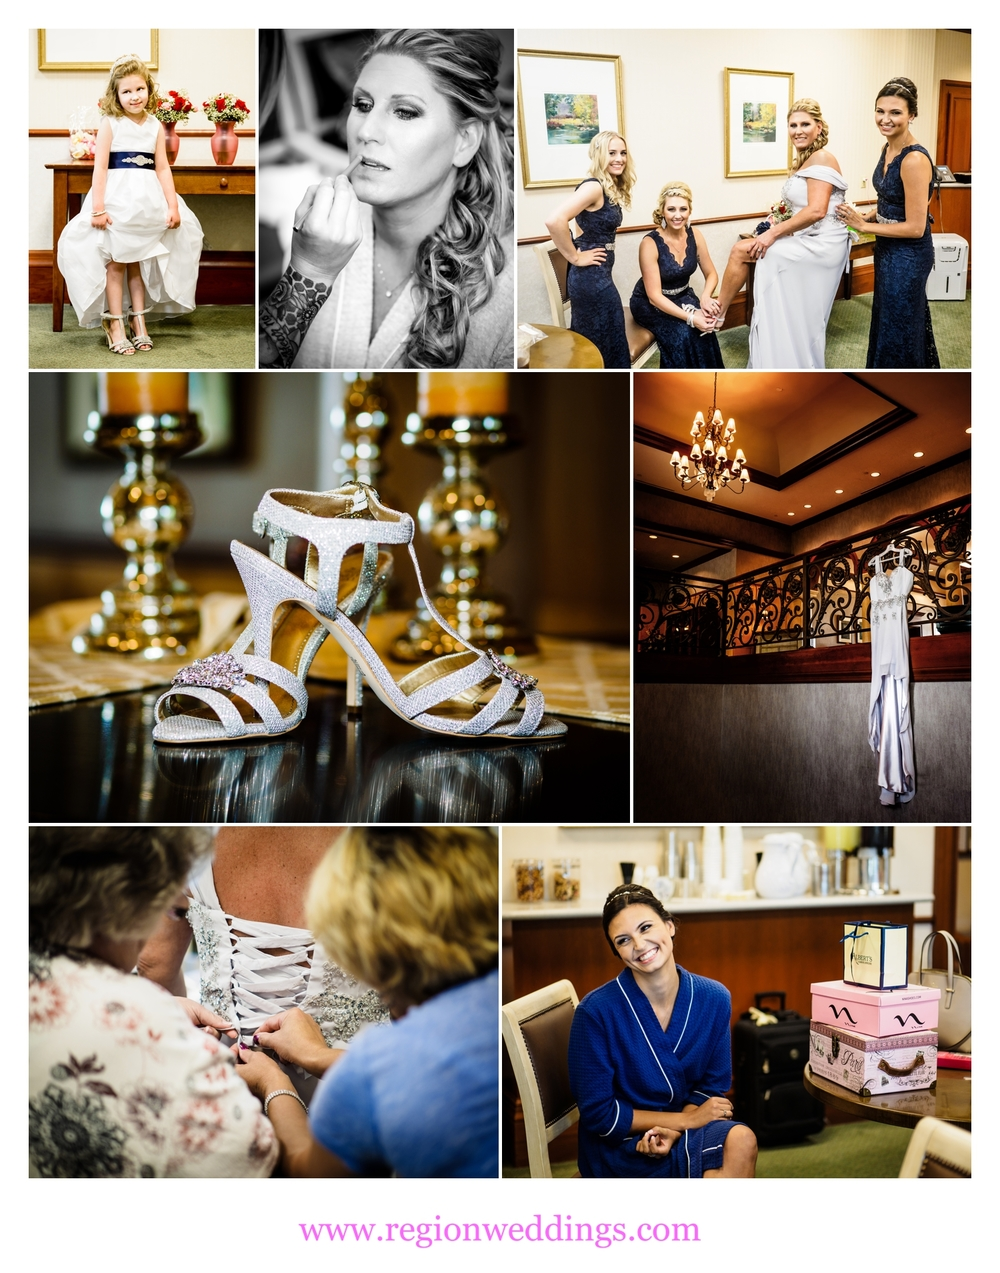 Bridal prep and wedding details at Sand Creek Golf Course in Chesterton, Indiana.